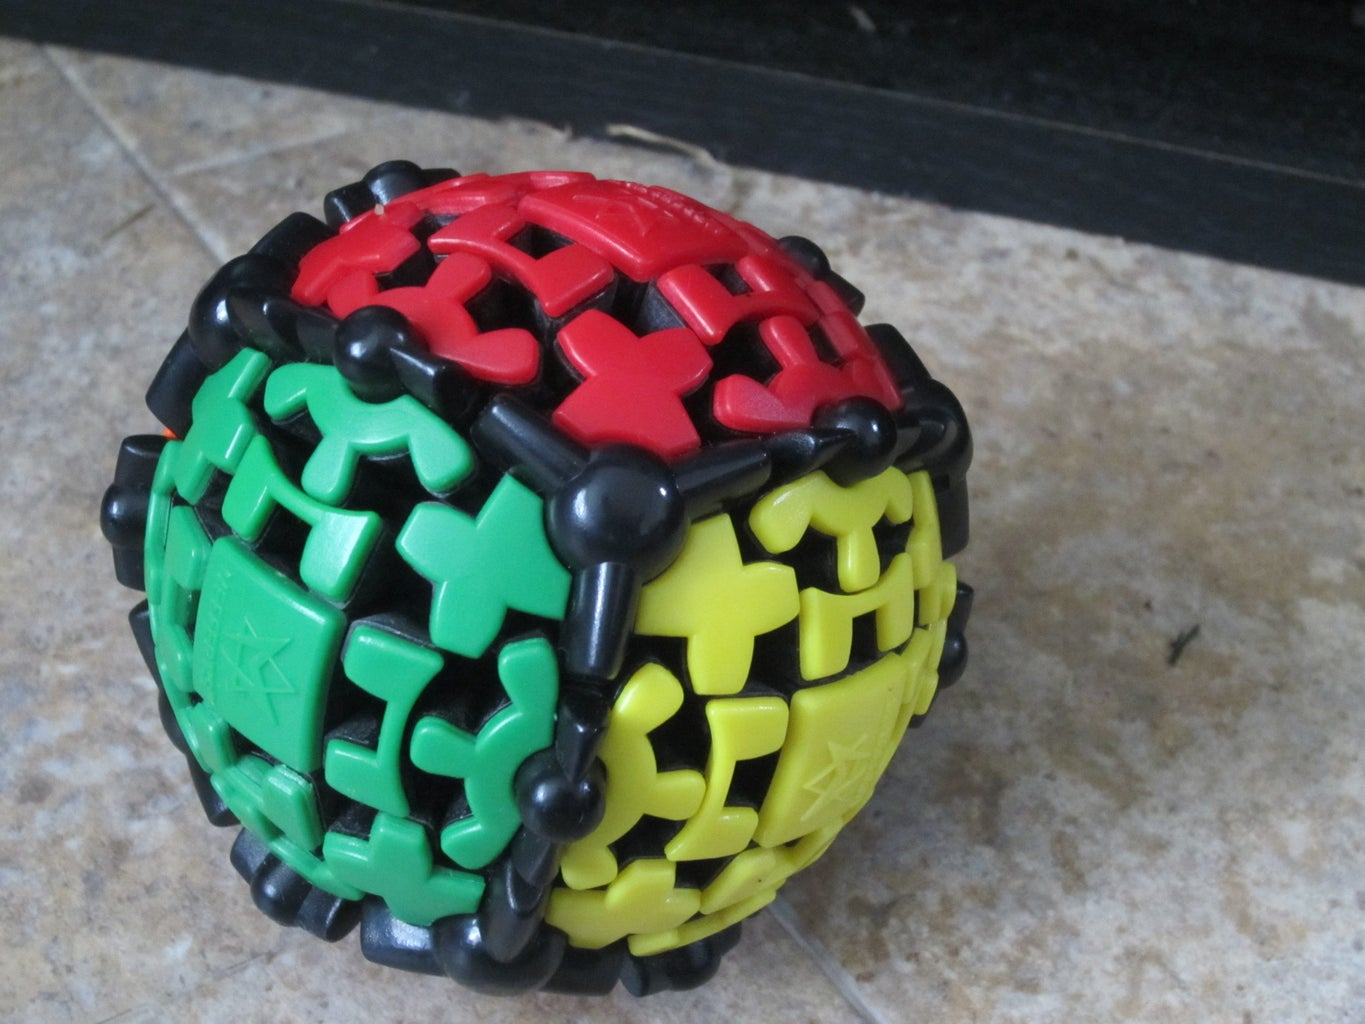 How to Solve the Gear Ball Rubik's Cube